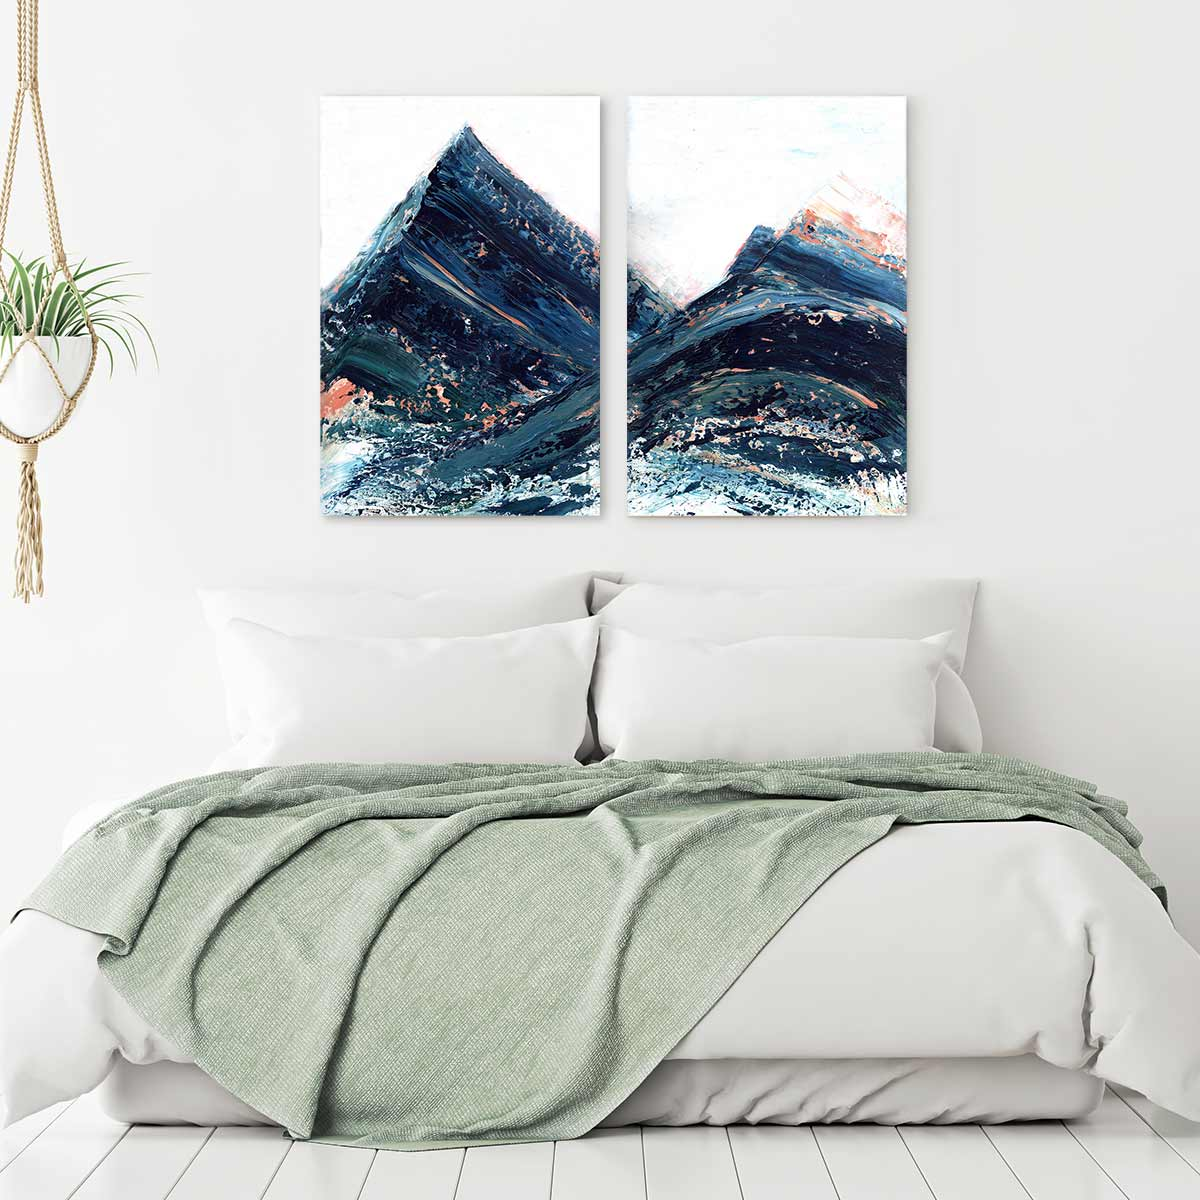 Copper Hills Canvas Art by Melissa Critchlow | Art Bloom